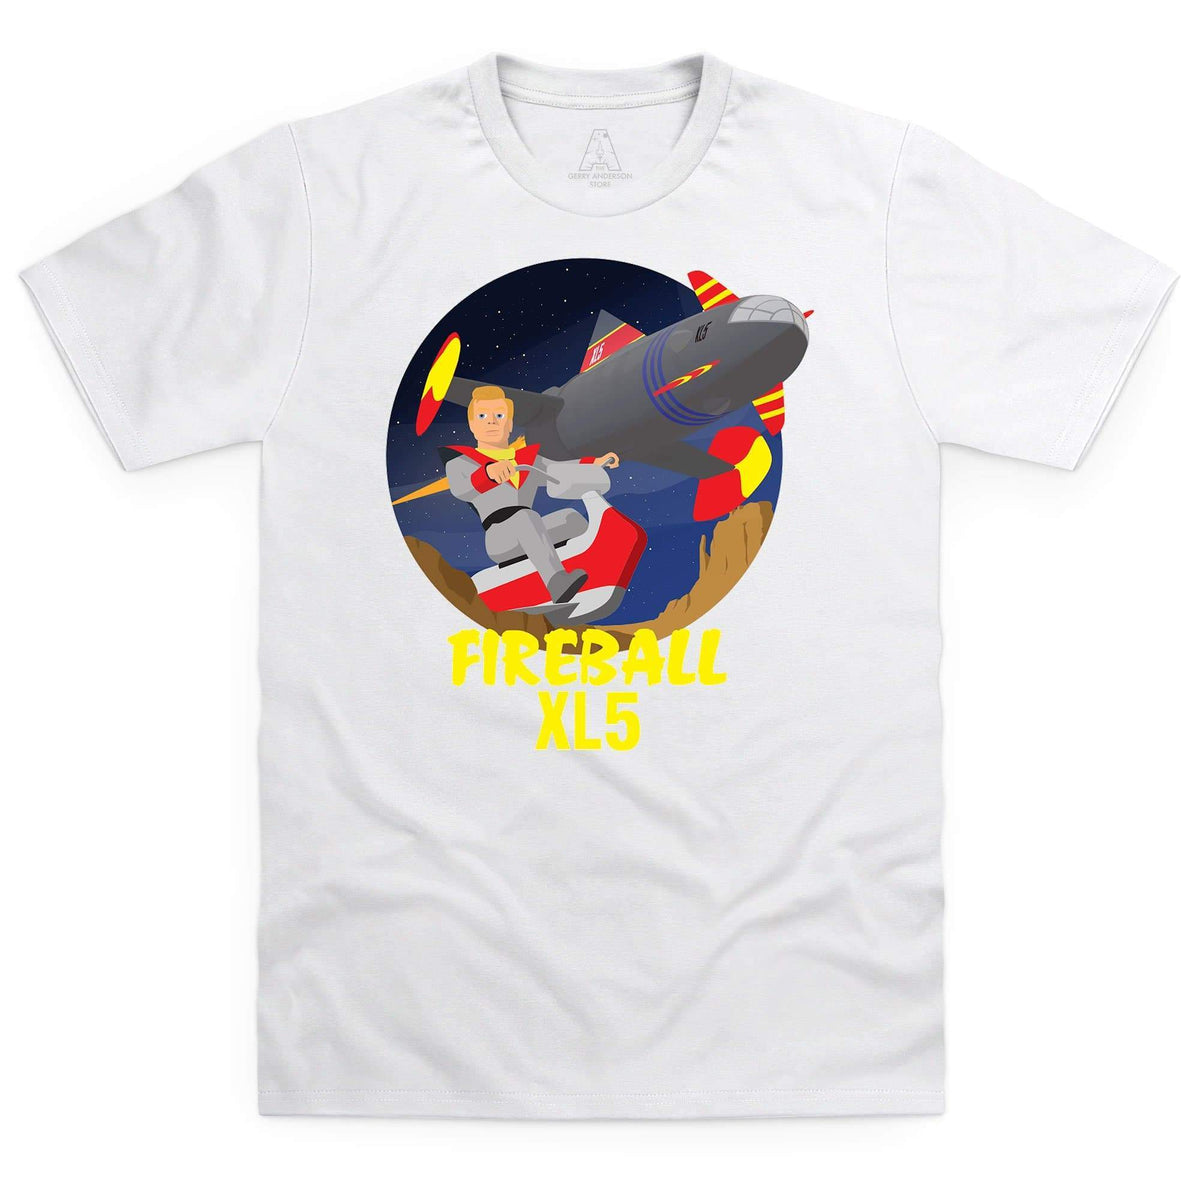 Fireball XL5 Men's White T-Shirt [Official & Exclusive] - The Gerry Anderson Store